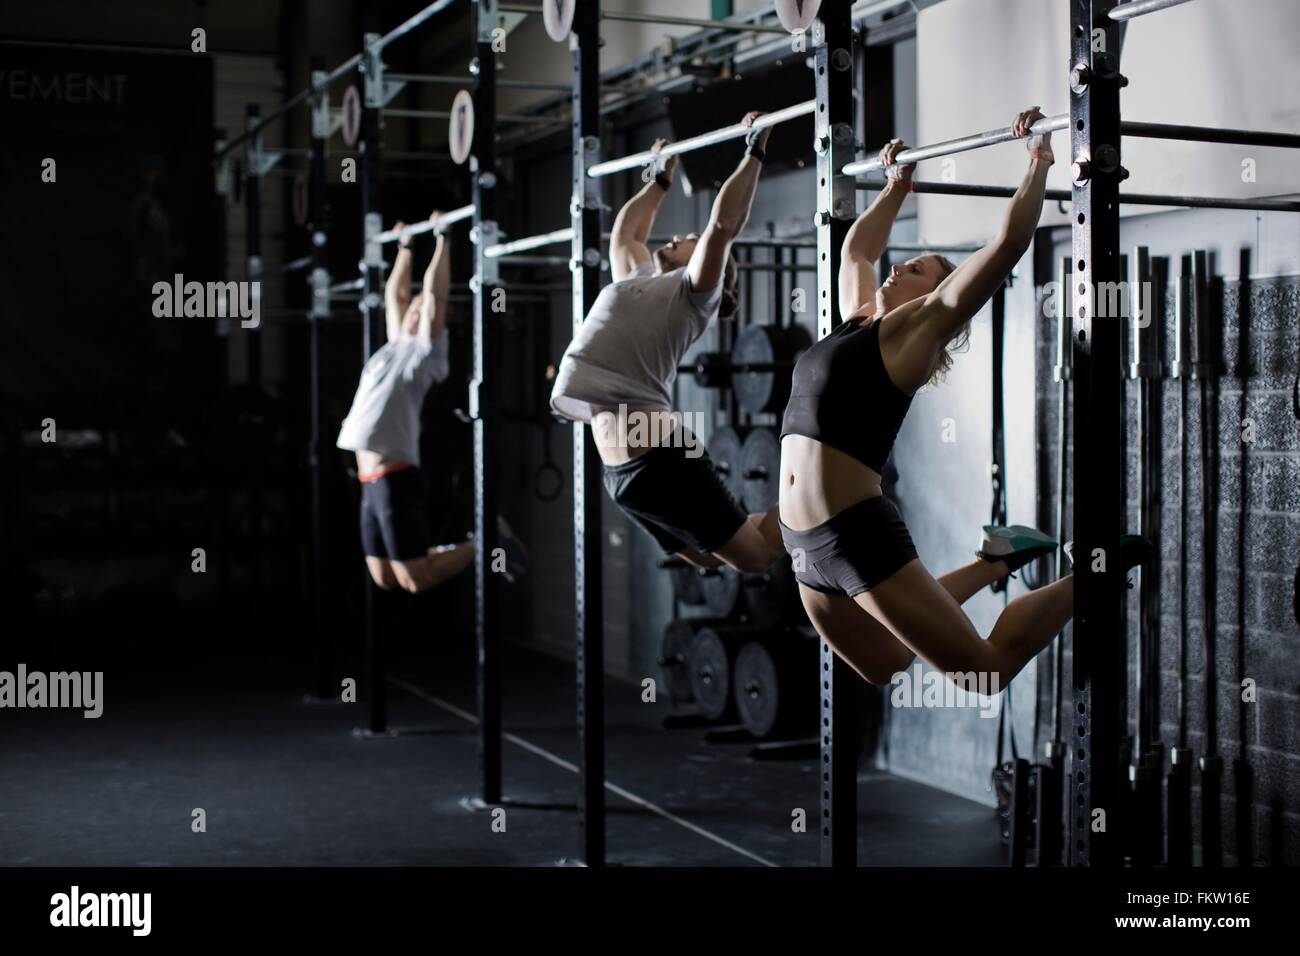 Male and female young adults training on wall bar in gym - Stock Image